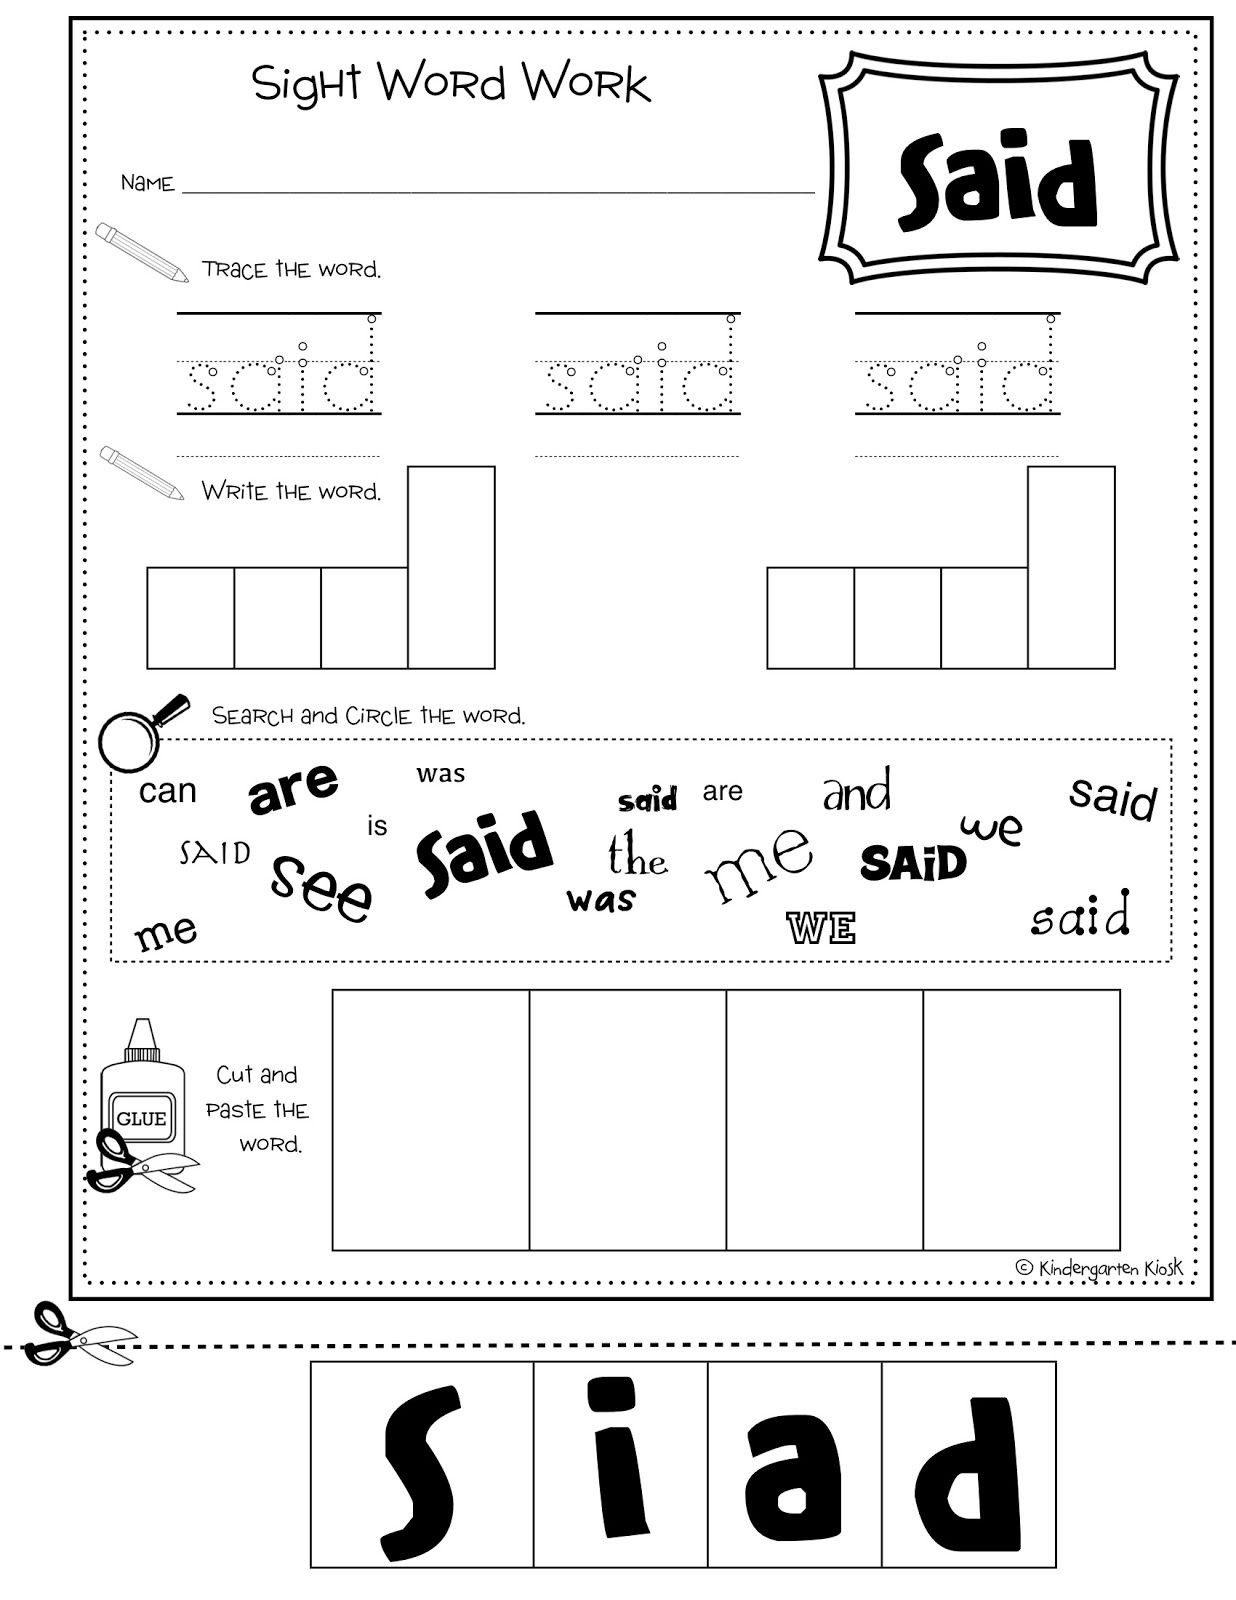 Sight Words For Kindergarten Contents Include – Site Word Worksheets for Kindergarten